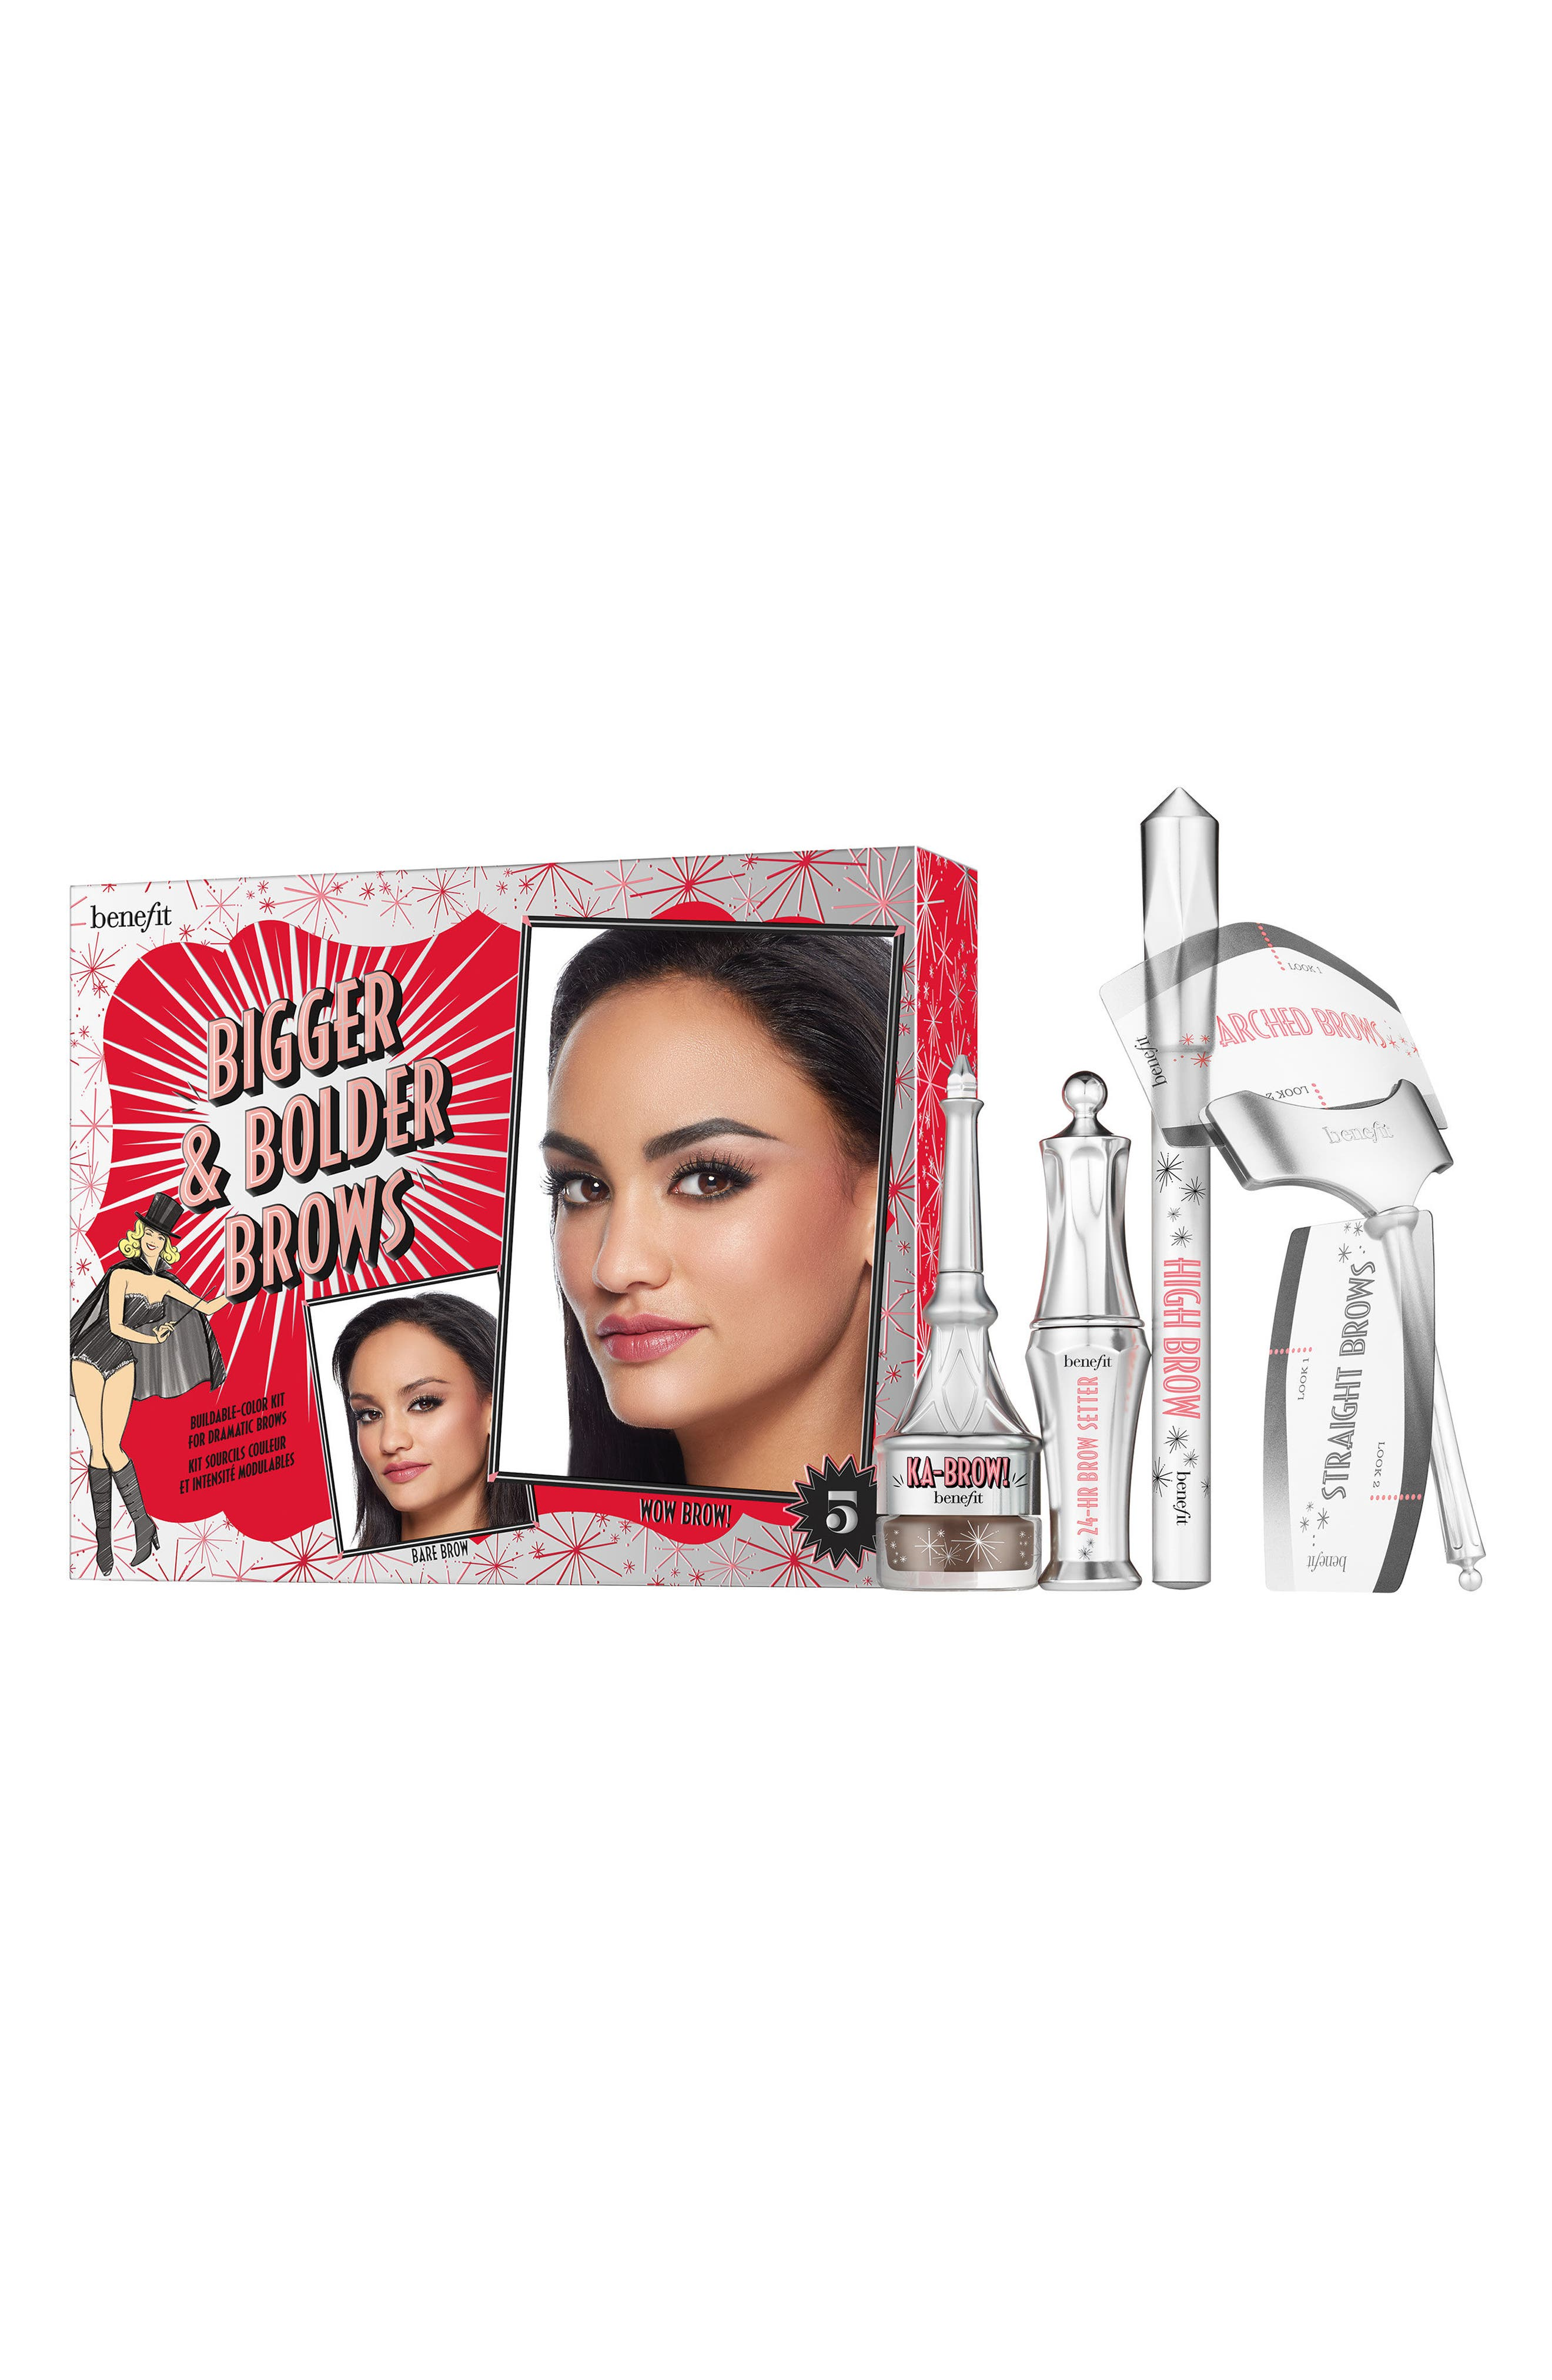 Benefit Bigger & Bolder Brows Kit Buildable Color Kit for Dramatic Brows ($62 Value)